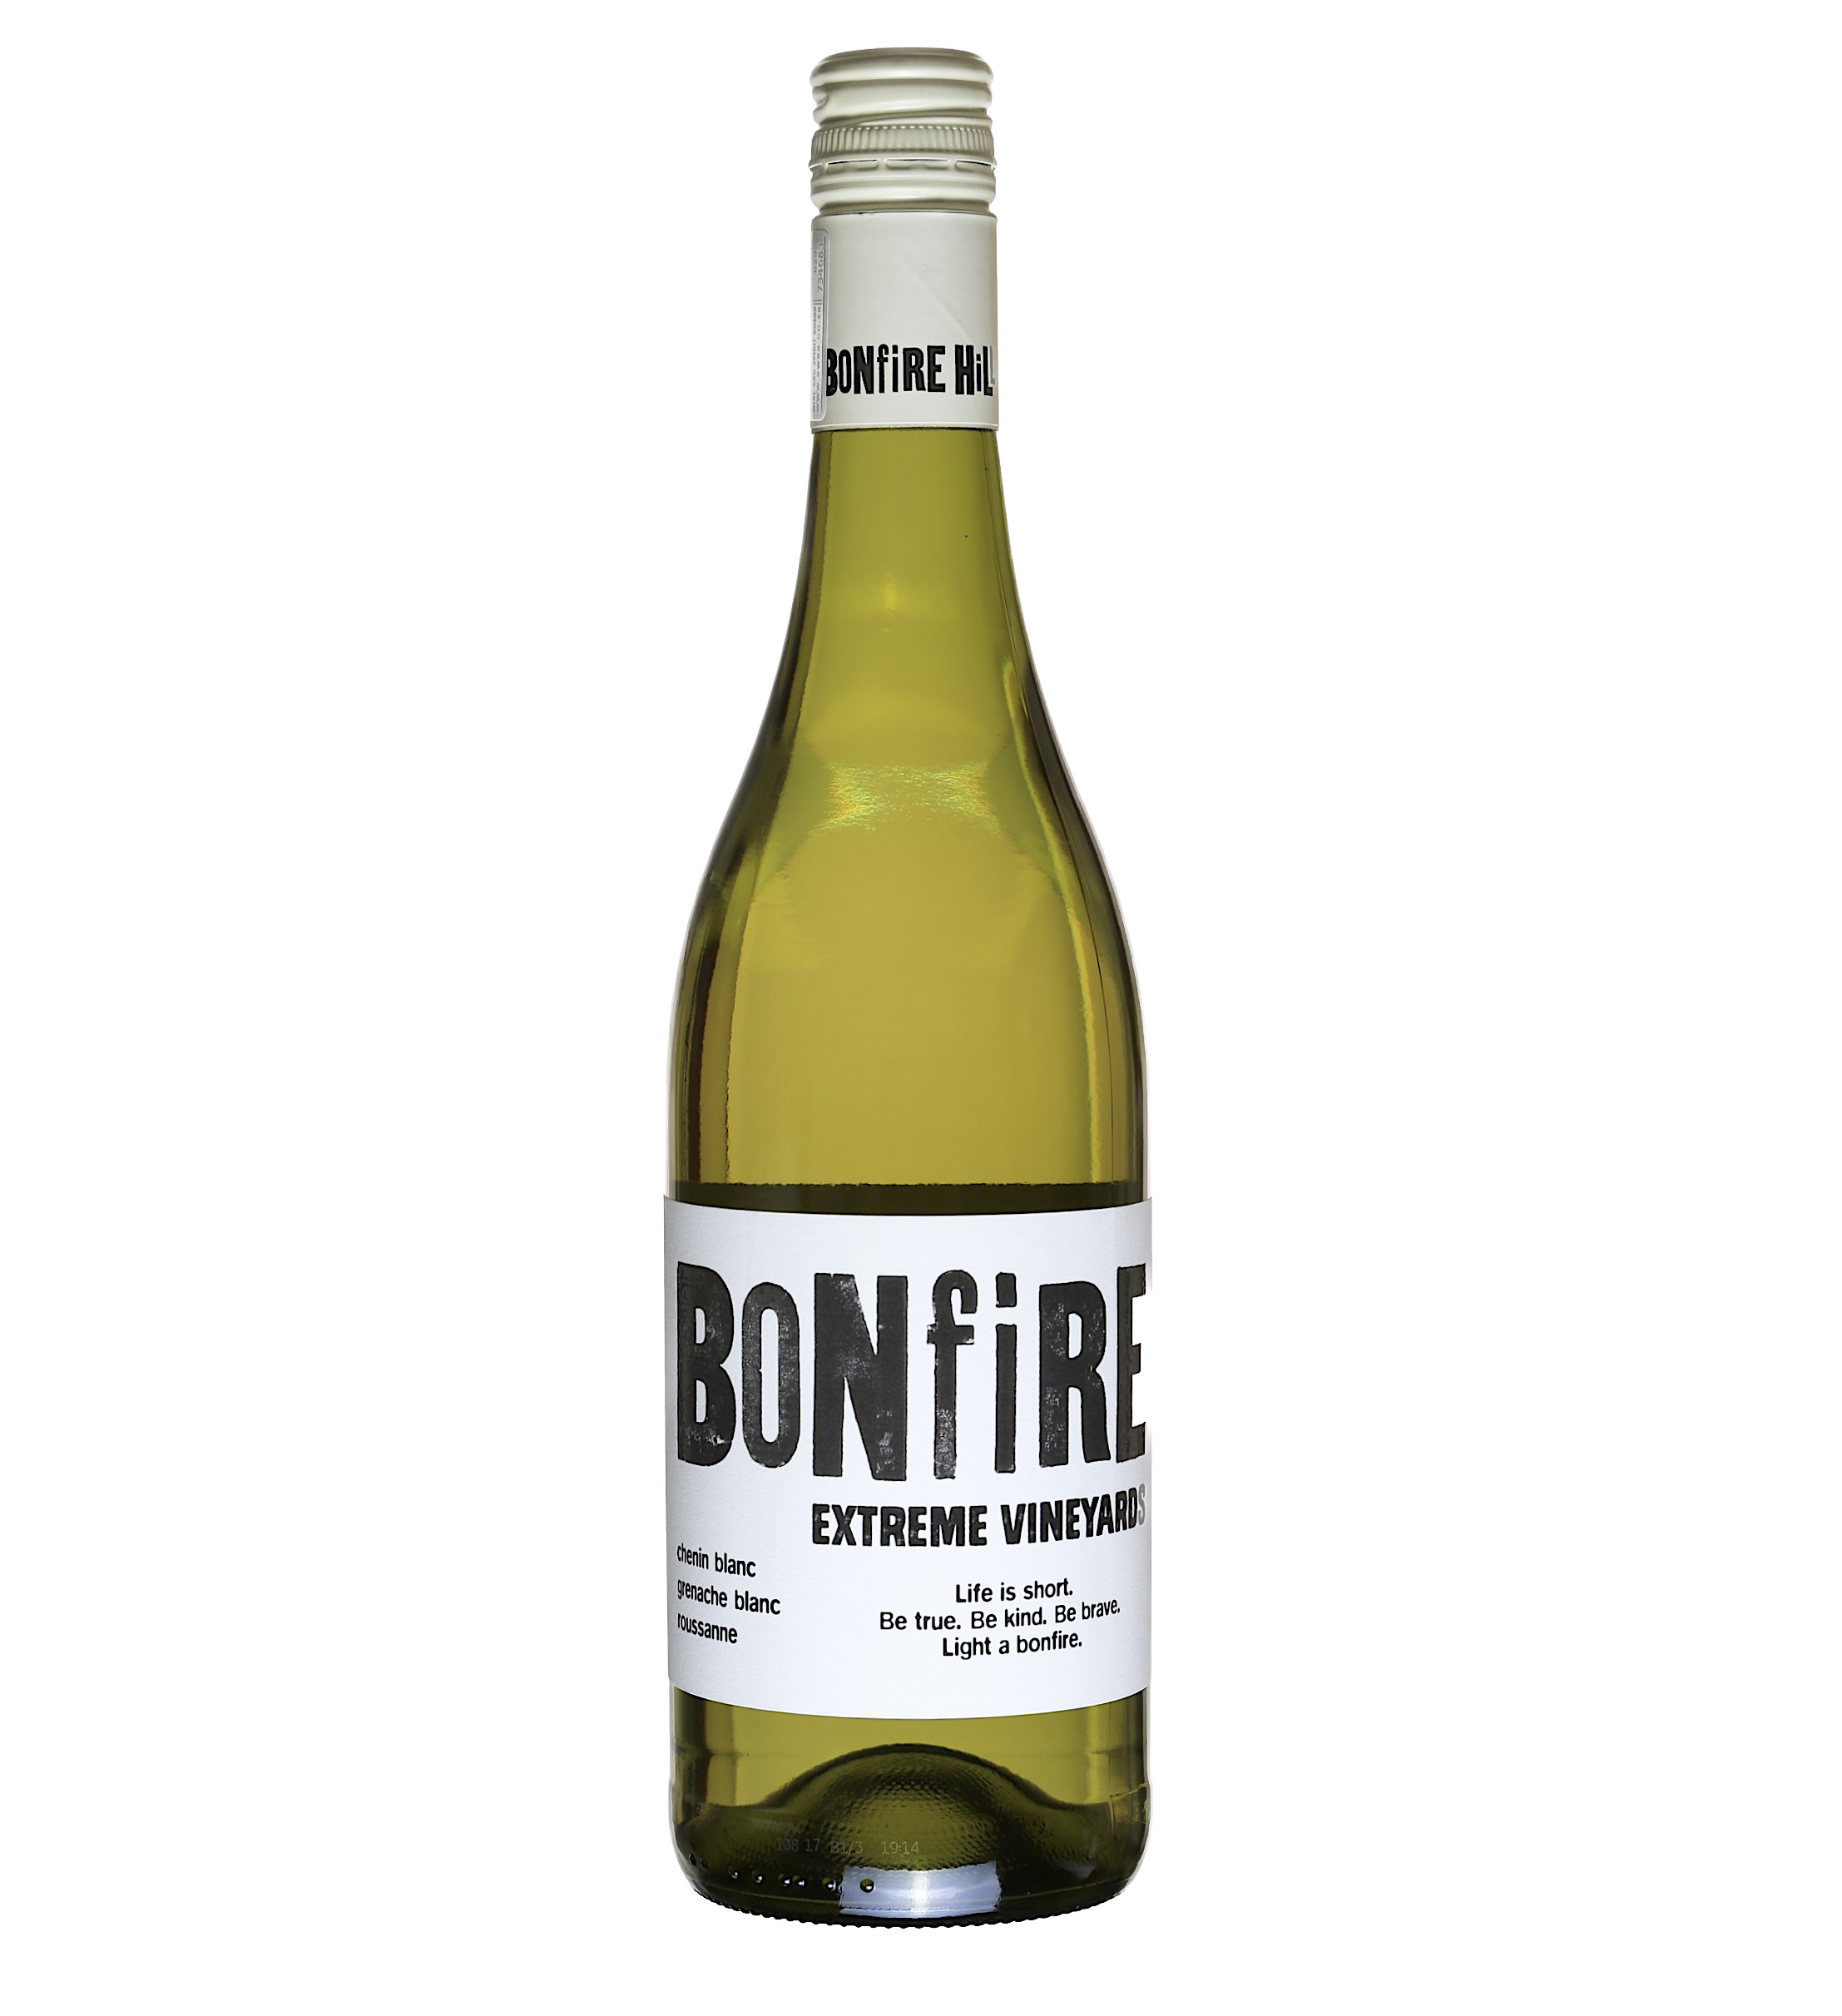 bonfire hill extreme vineyards white